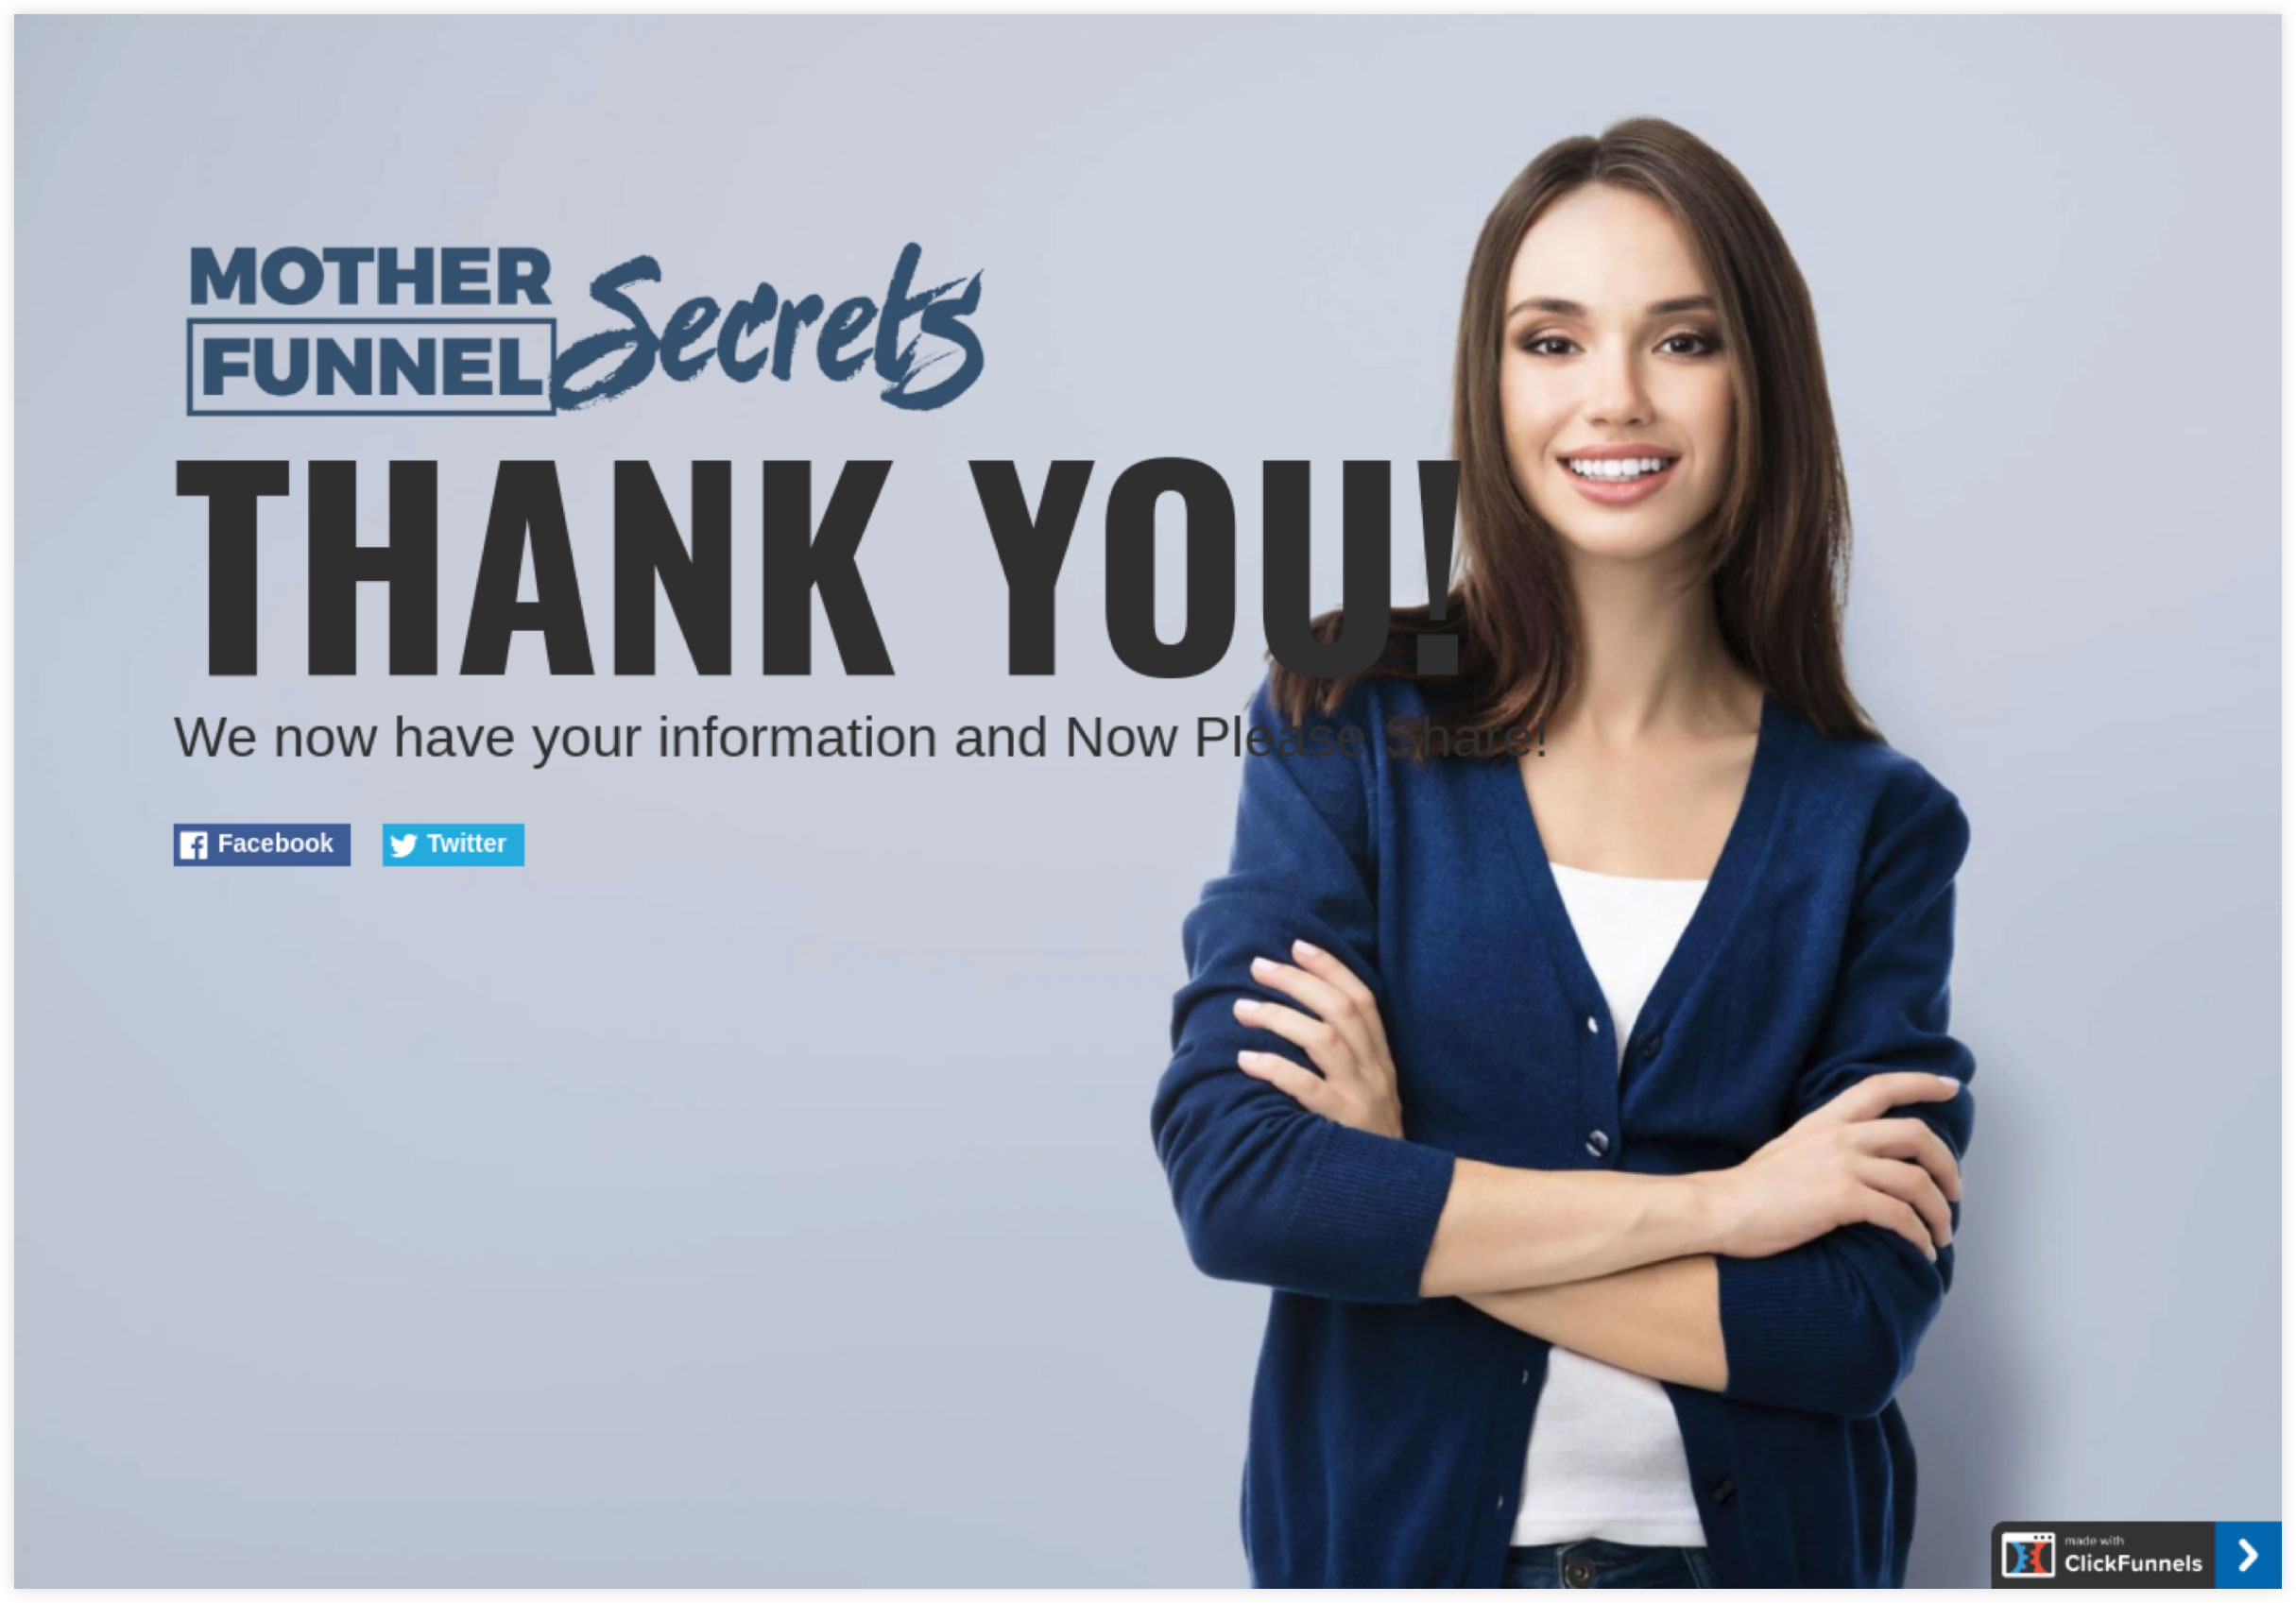 Mother Funnel Secrets squeeze page success message example.